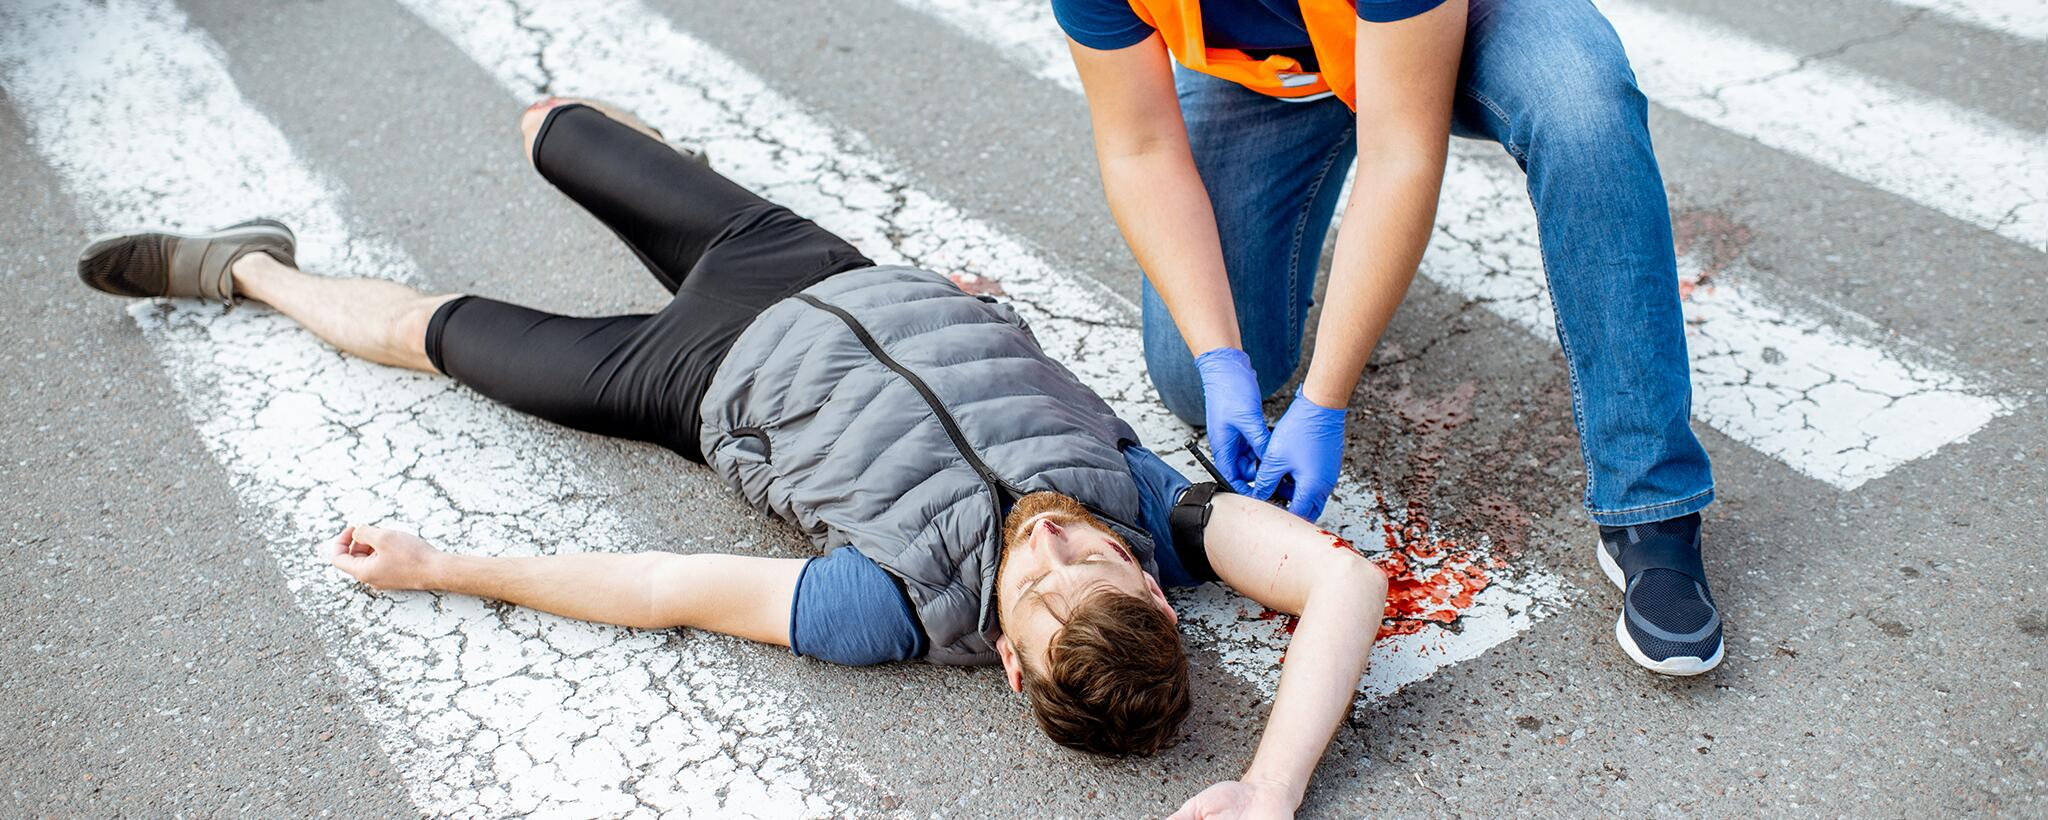 a man performs first aid on an injured person laying on road